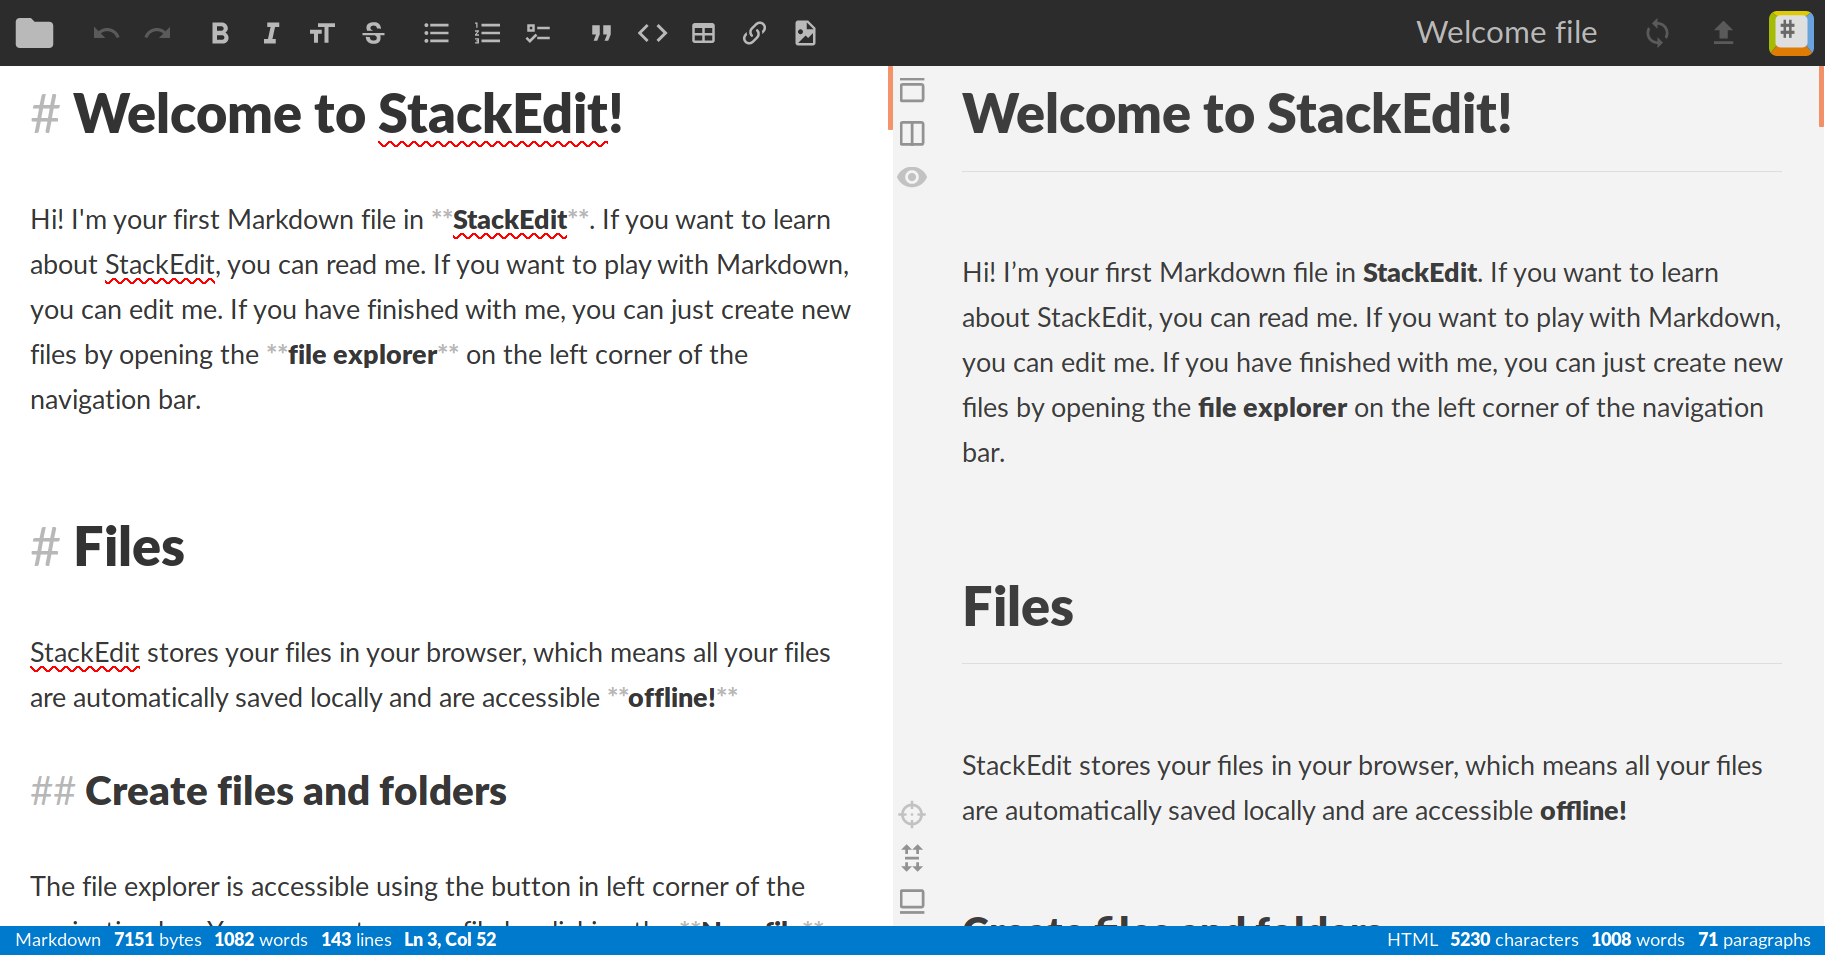 A Screenshot of StackEdit.